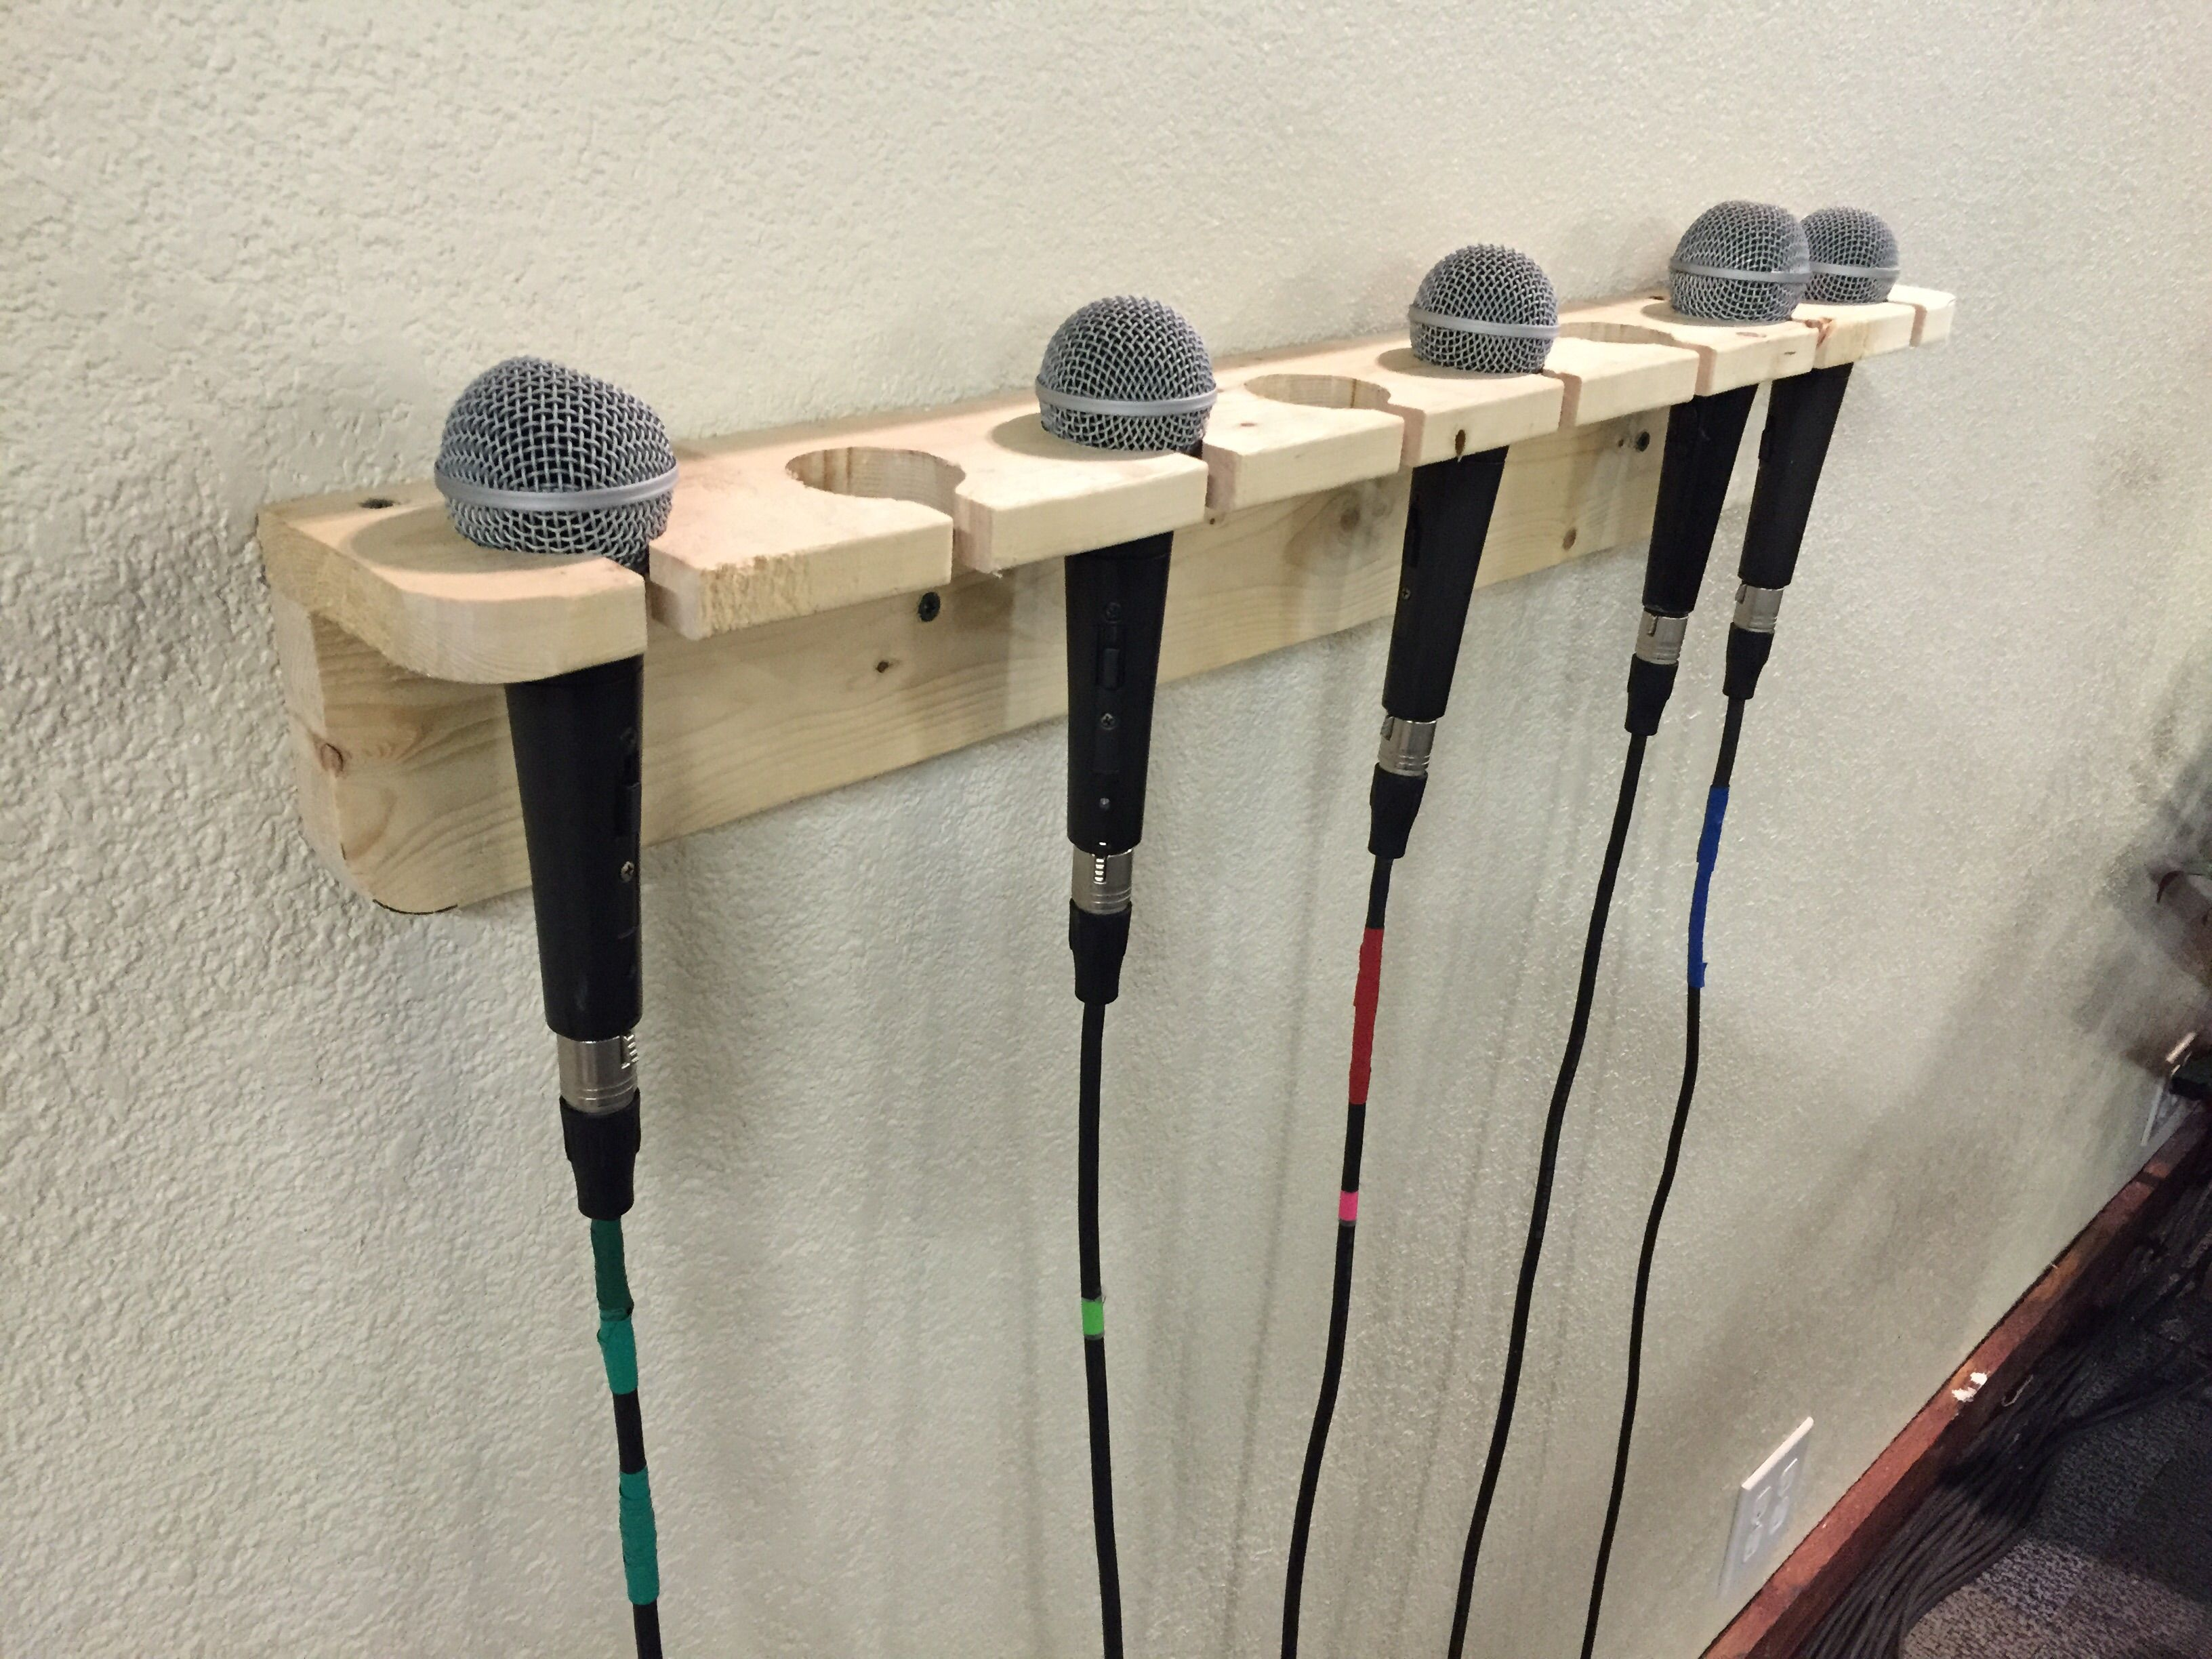 Diy Microphone Holder Better Then Having Them On The Floor Sound Room Band Rooms Home Music Rooms